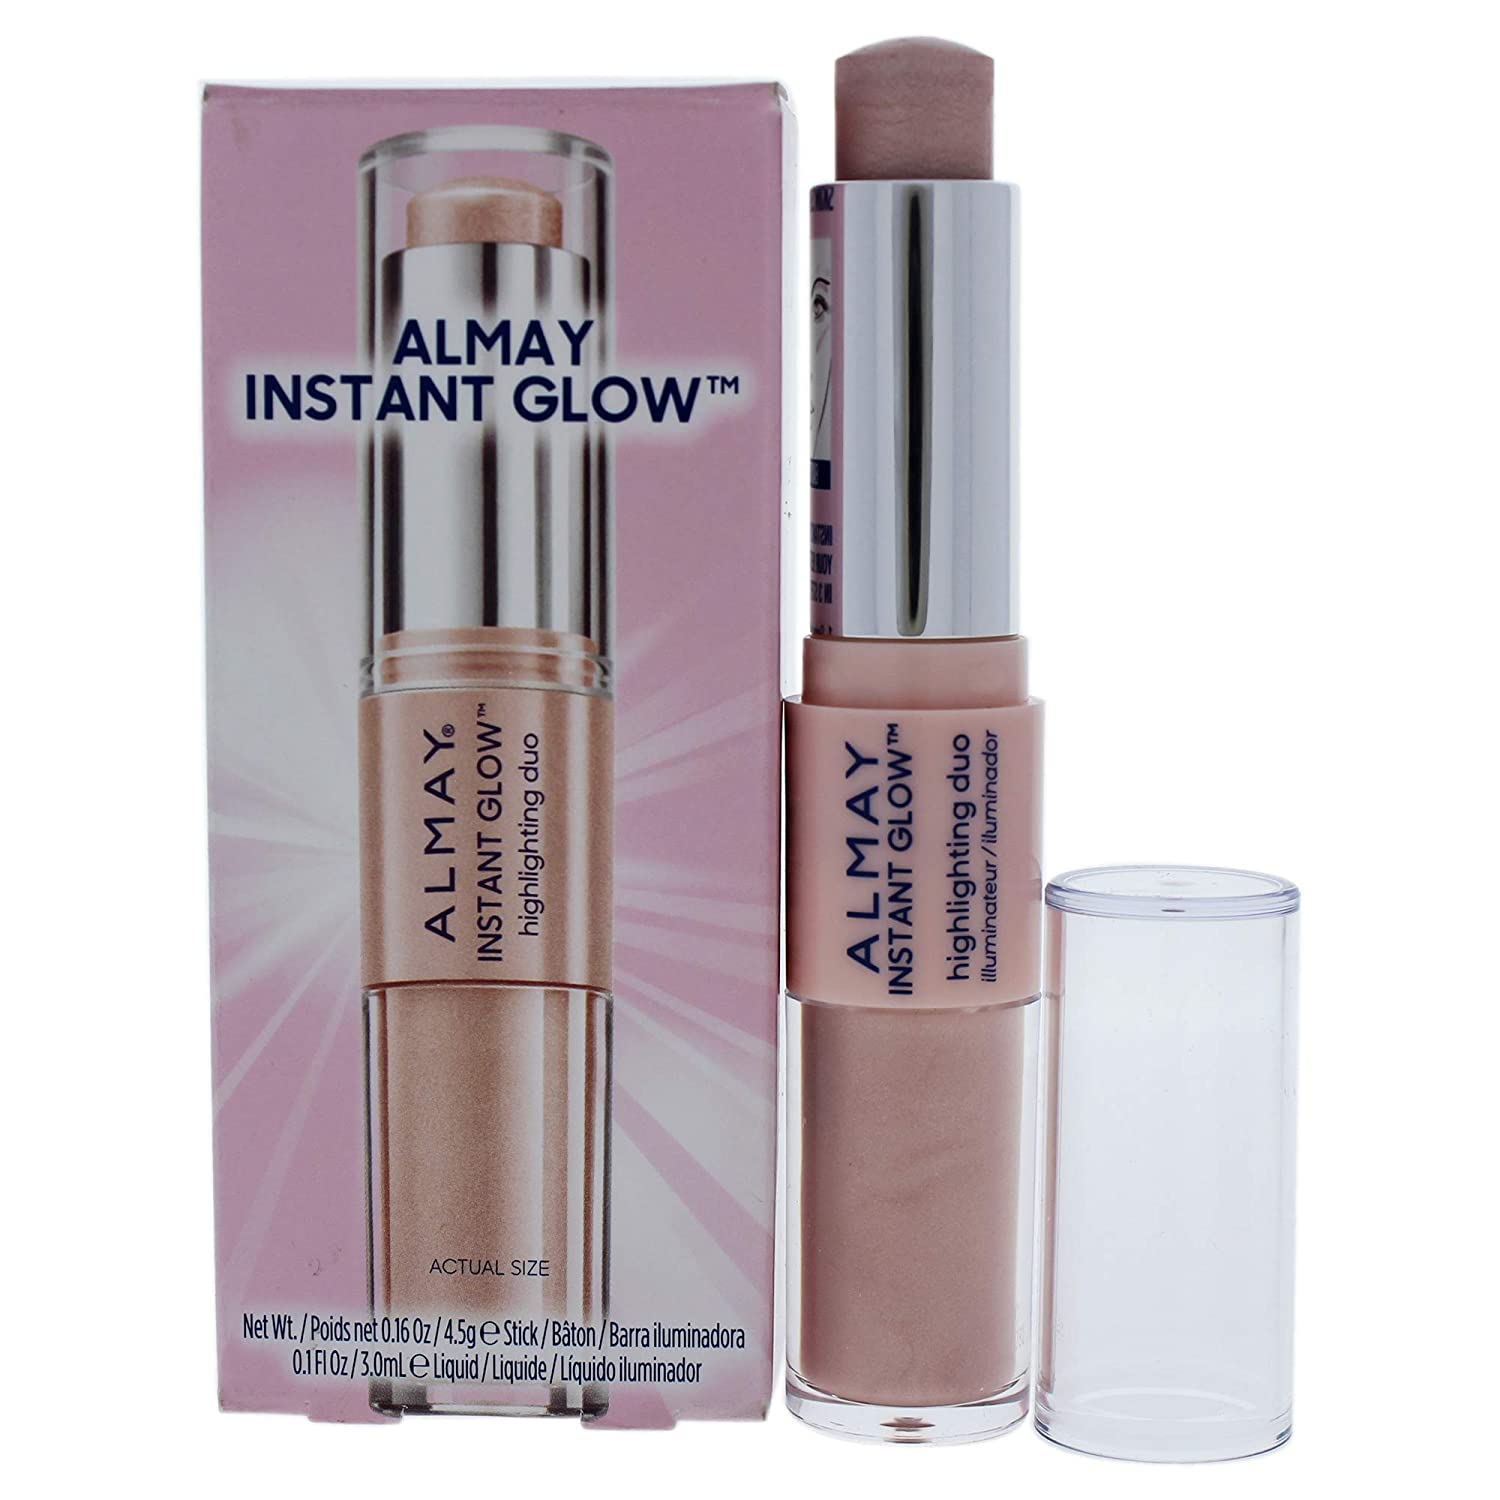 Almay Instant Glow Highlighting Duo - 100 Soft Glow By Almay for Women - 0.26 Oz Highlighter, 0.26 Oz